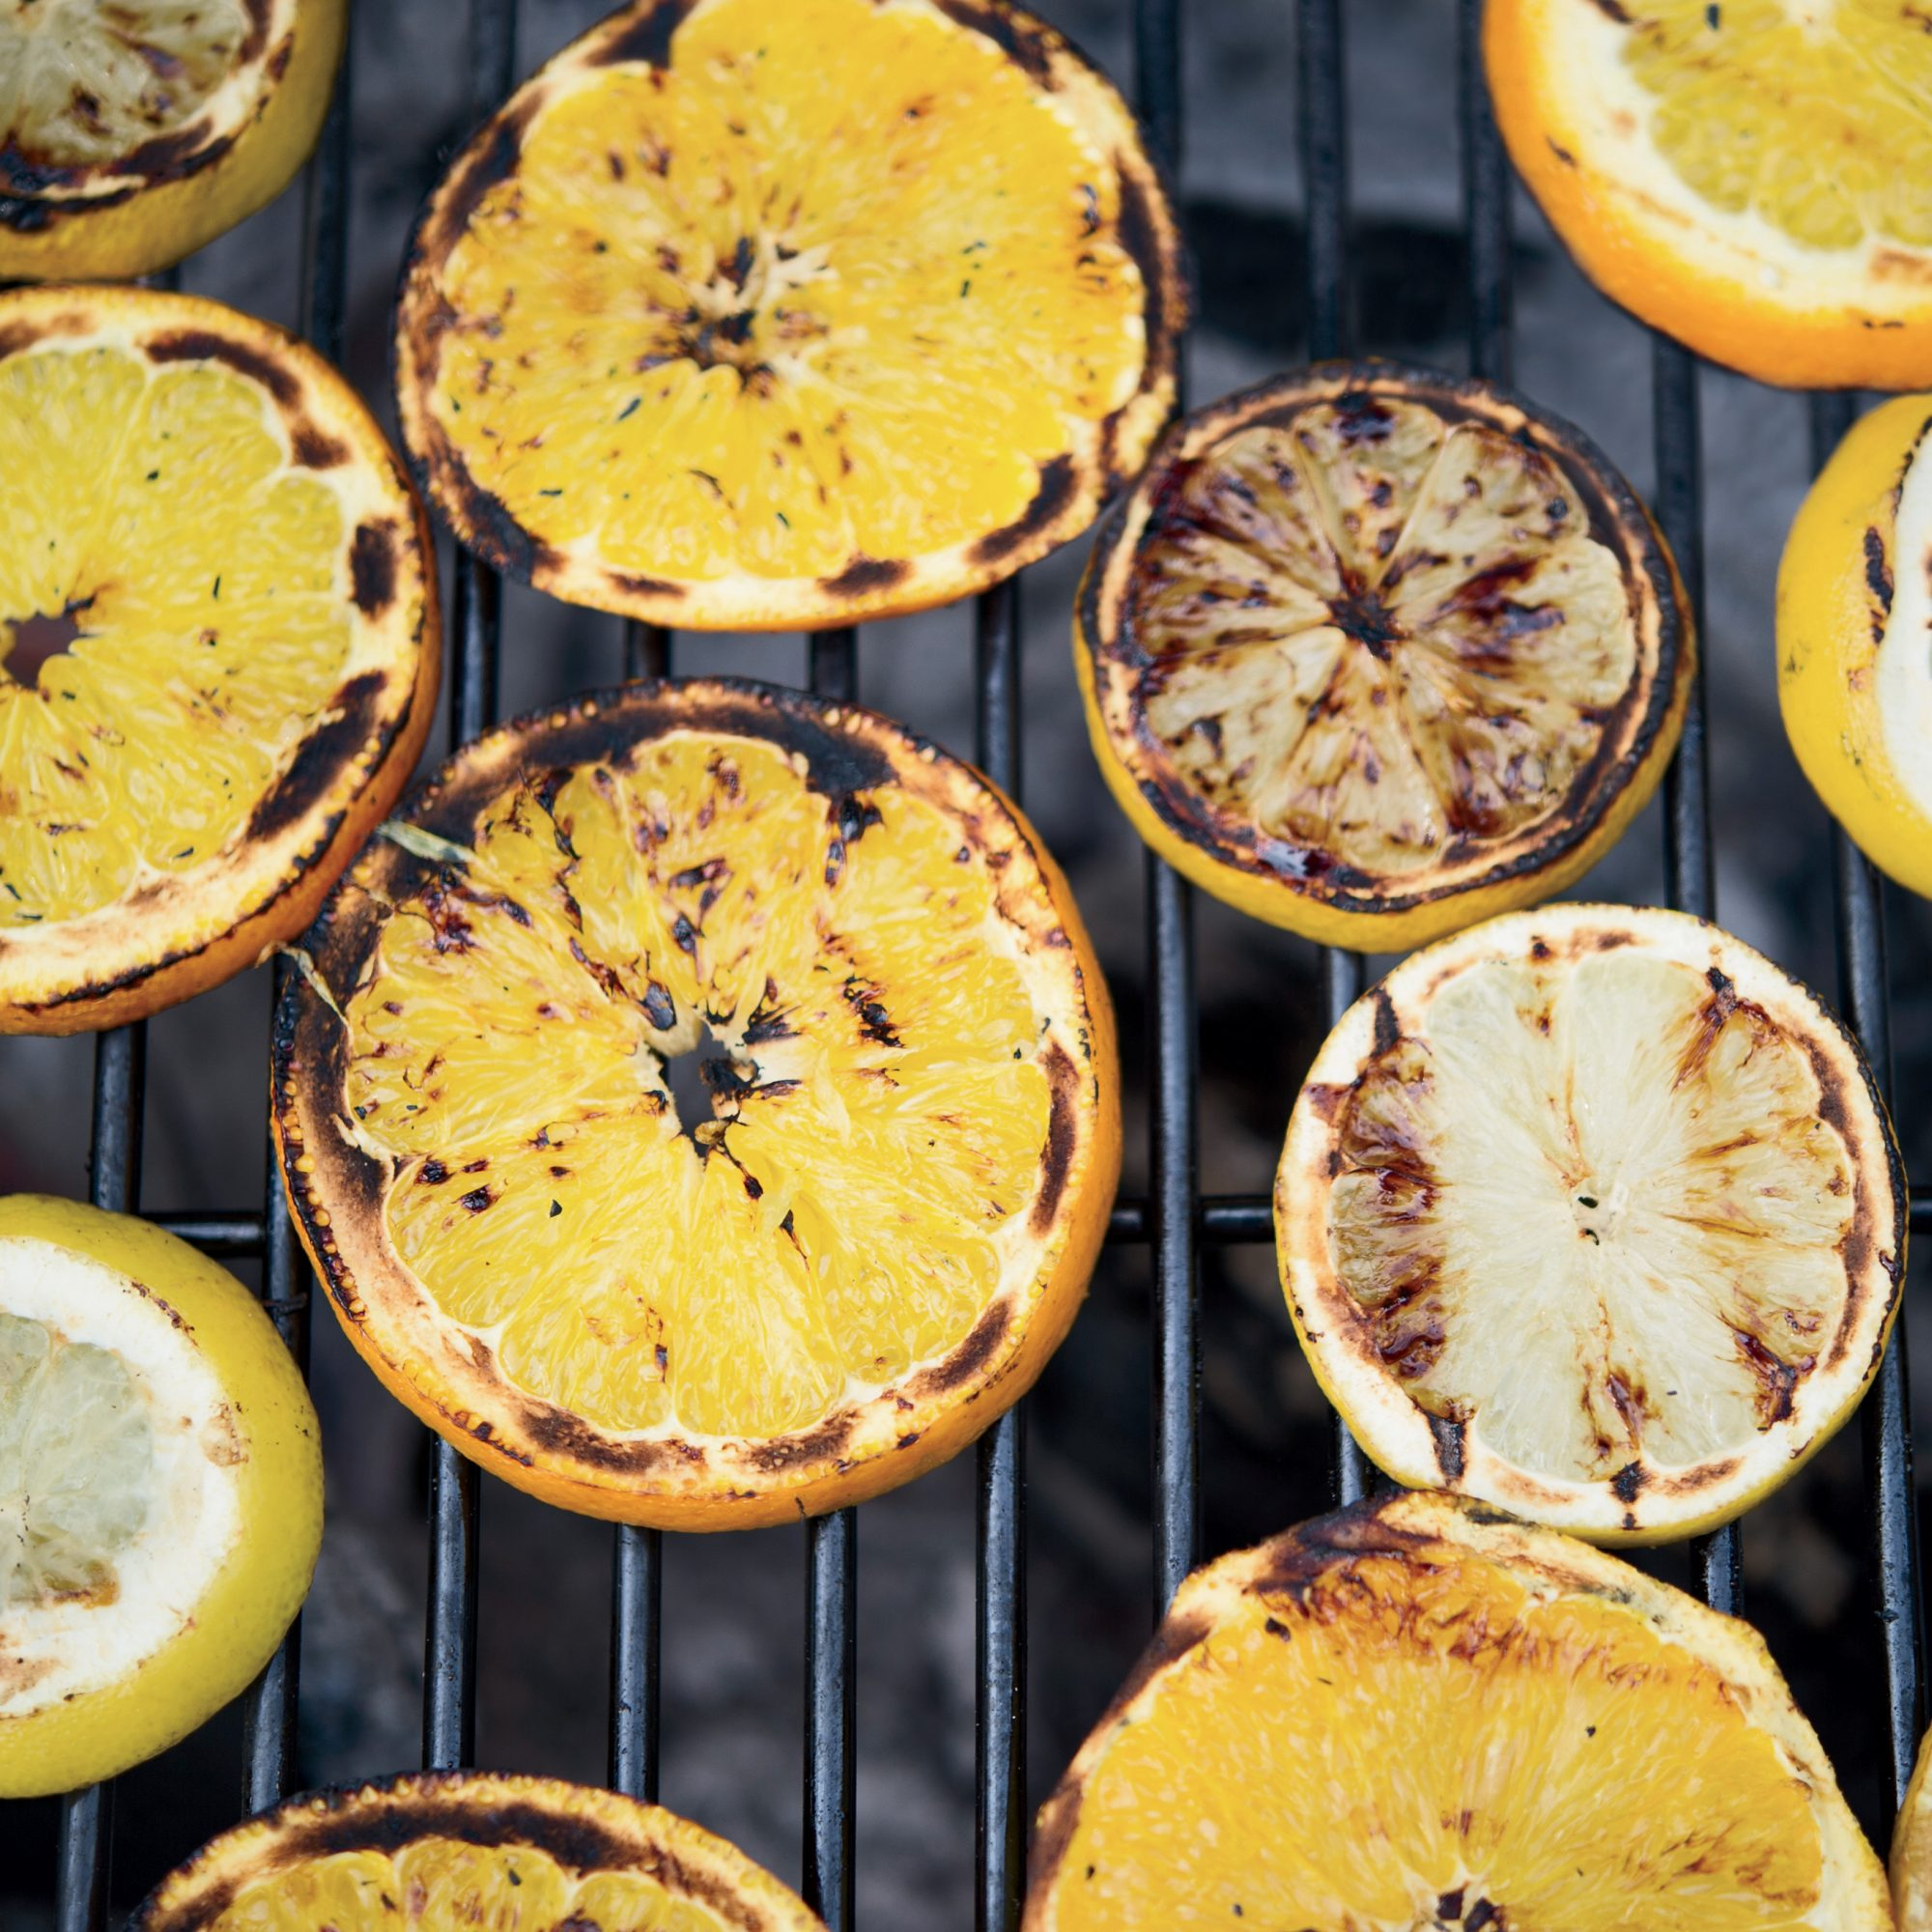 Grilled-Citrus Margaritas